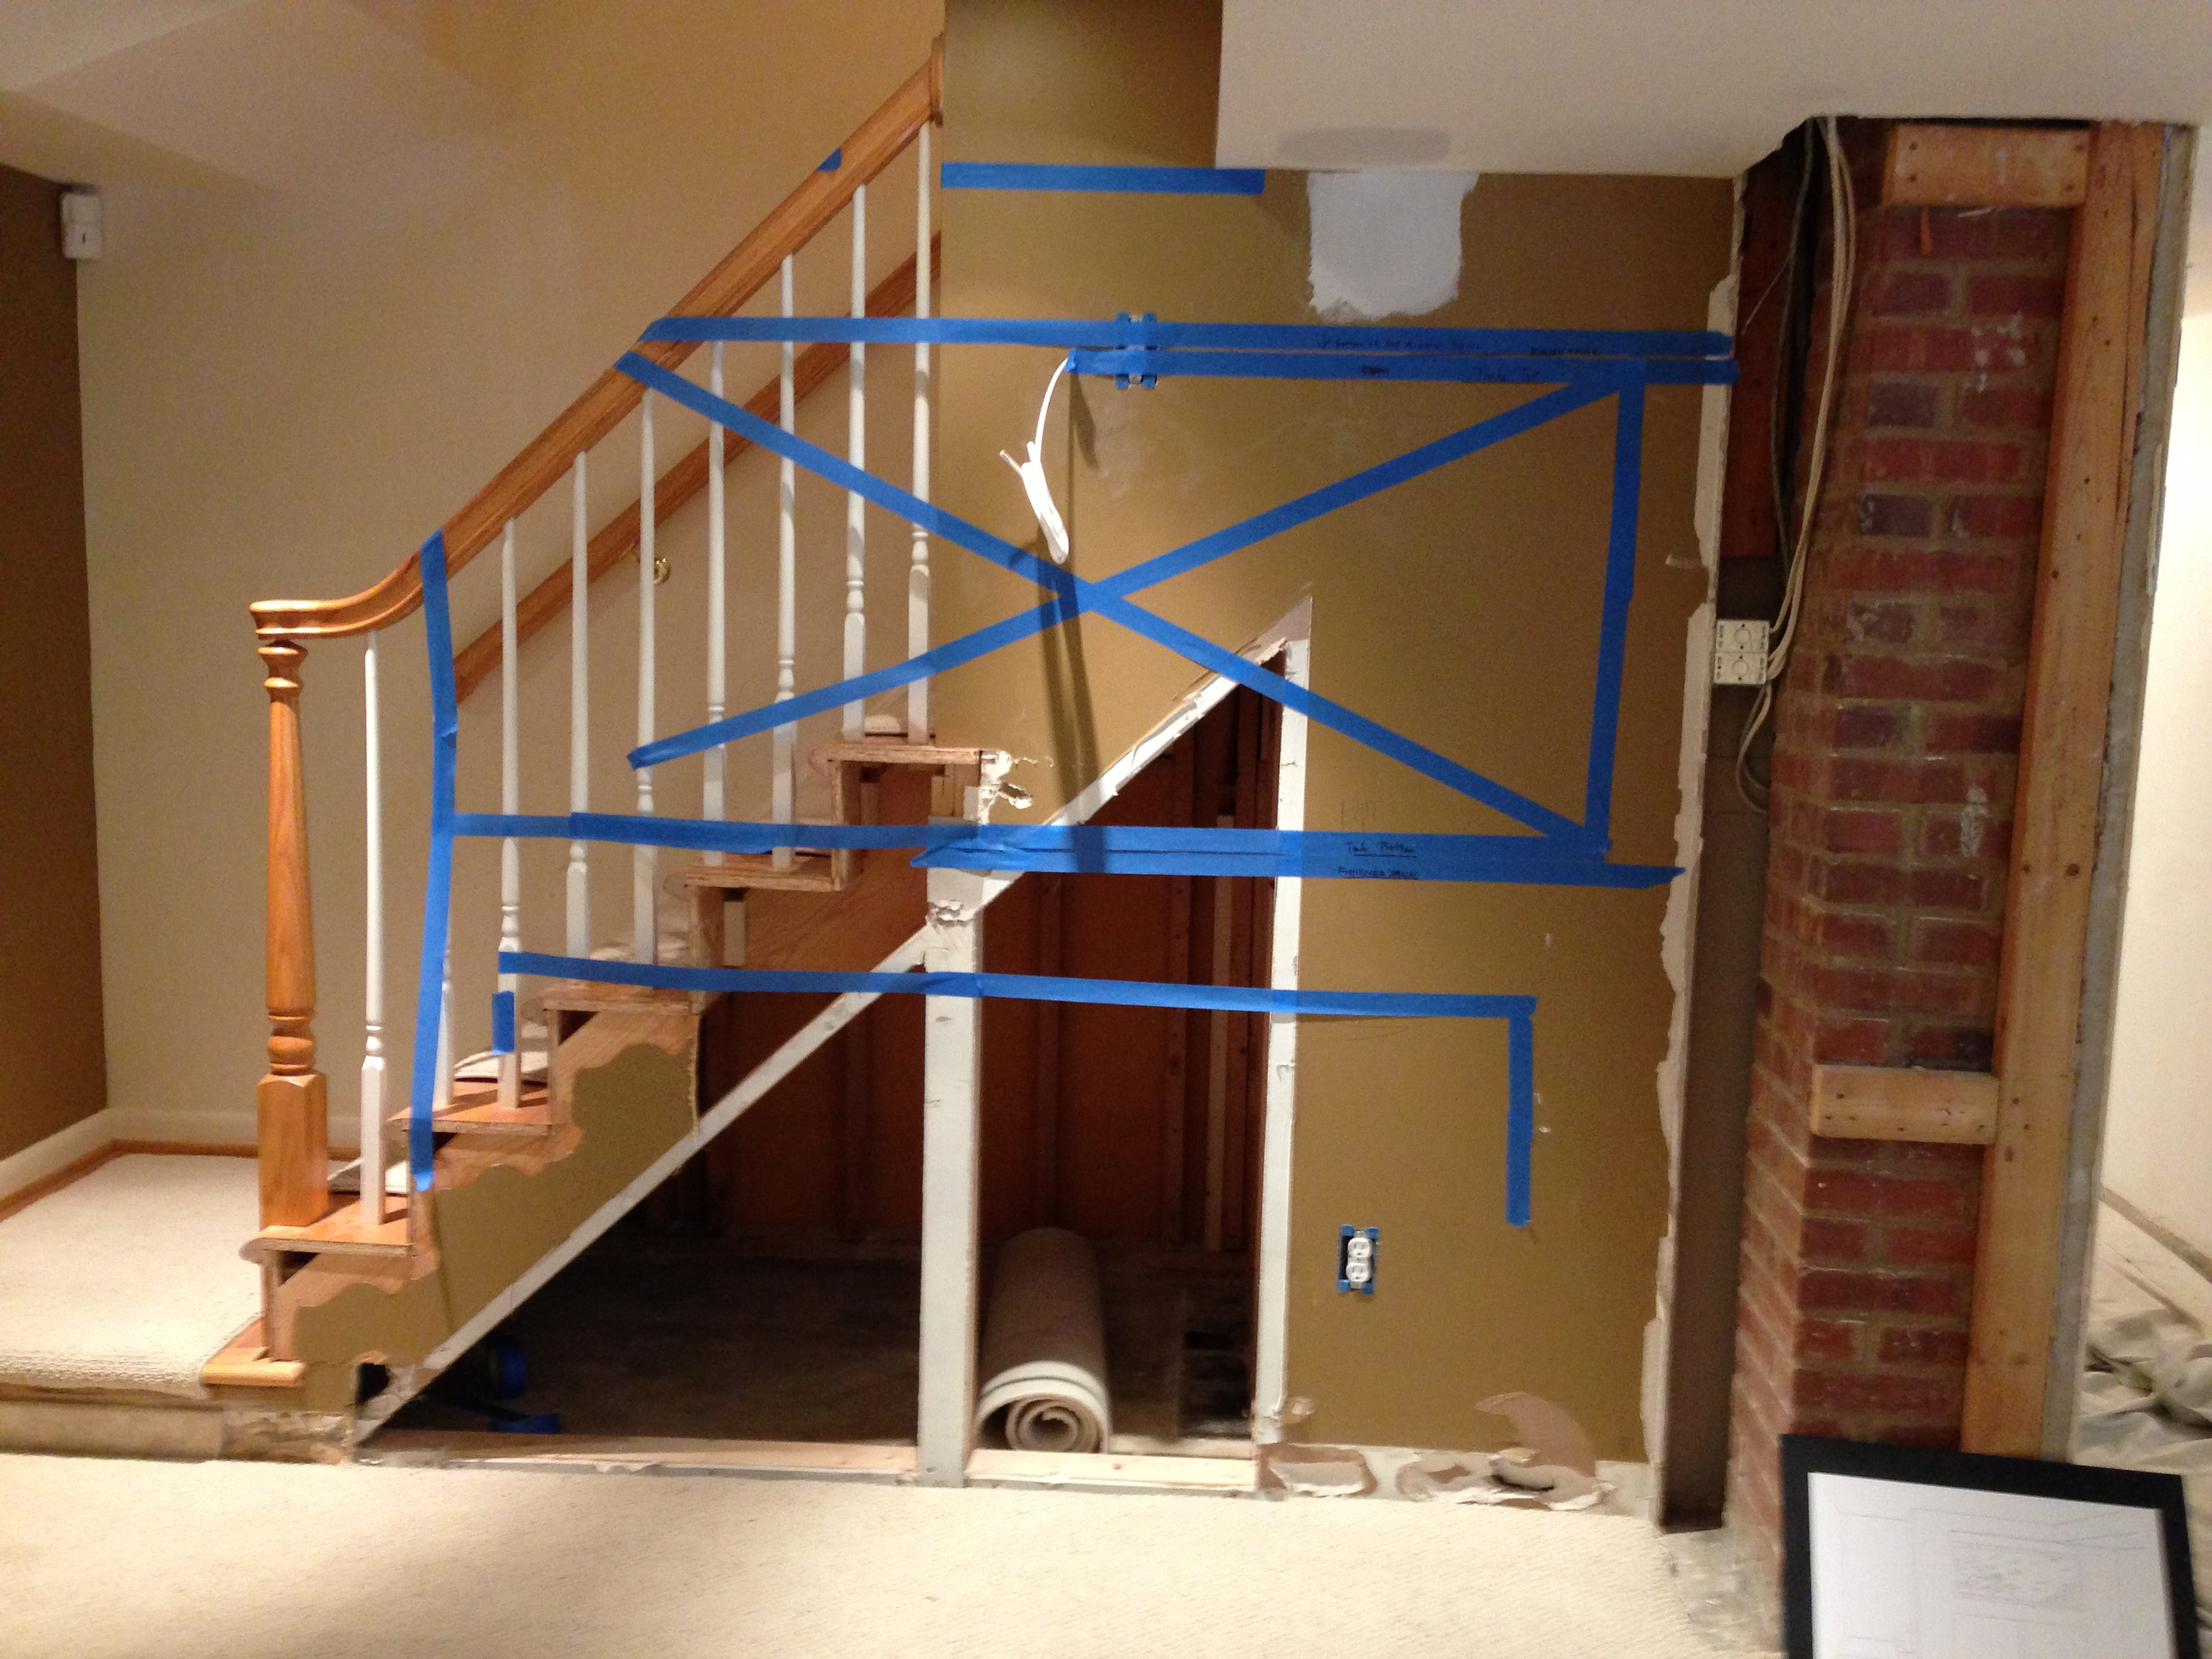 Staircase and lower well wall marked with blue tape to show aquarium position